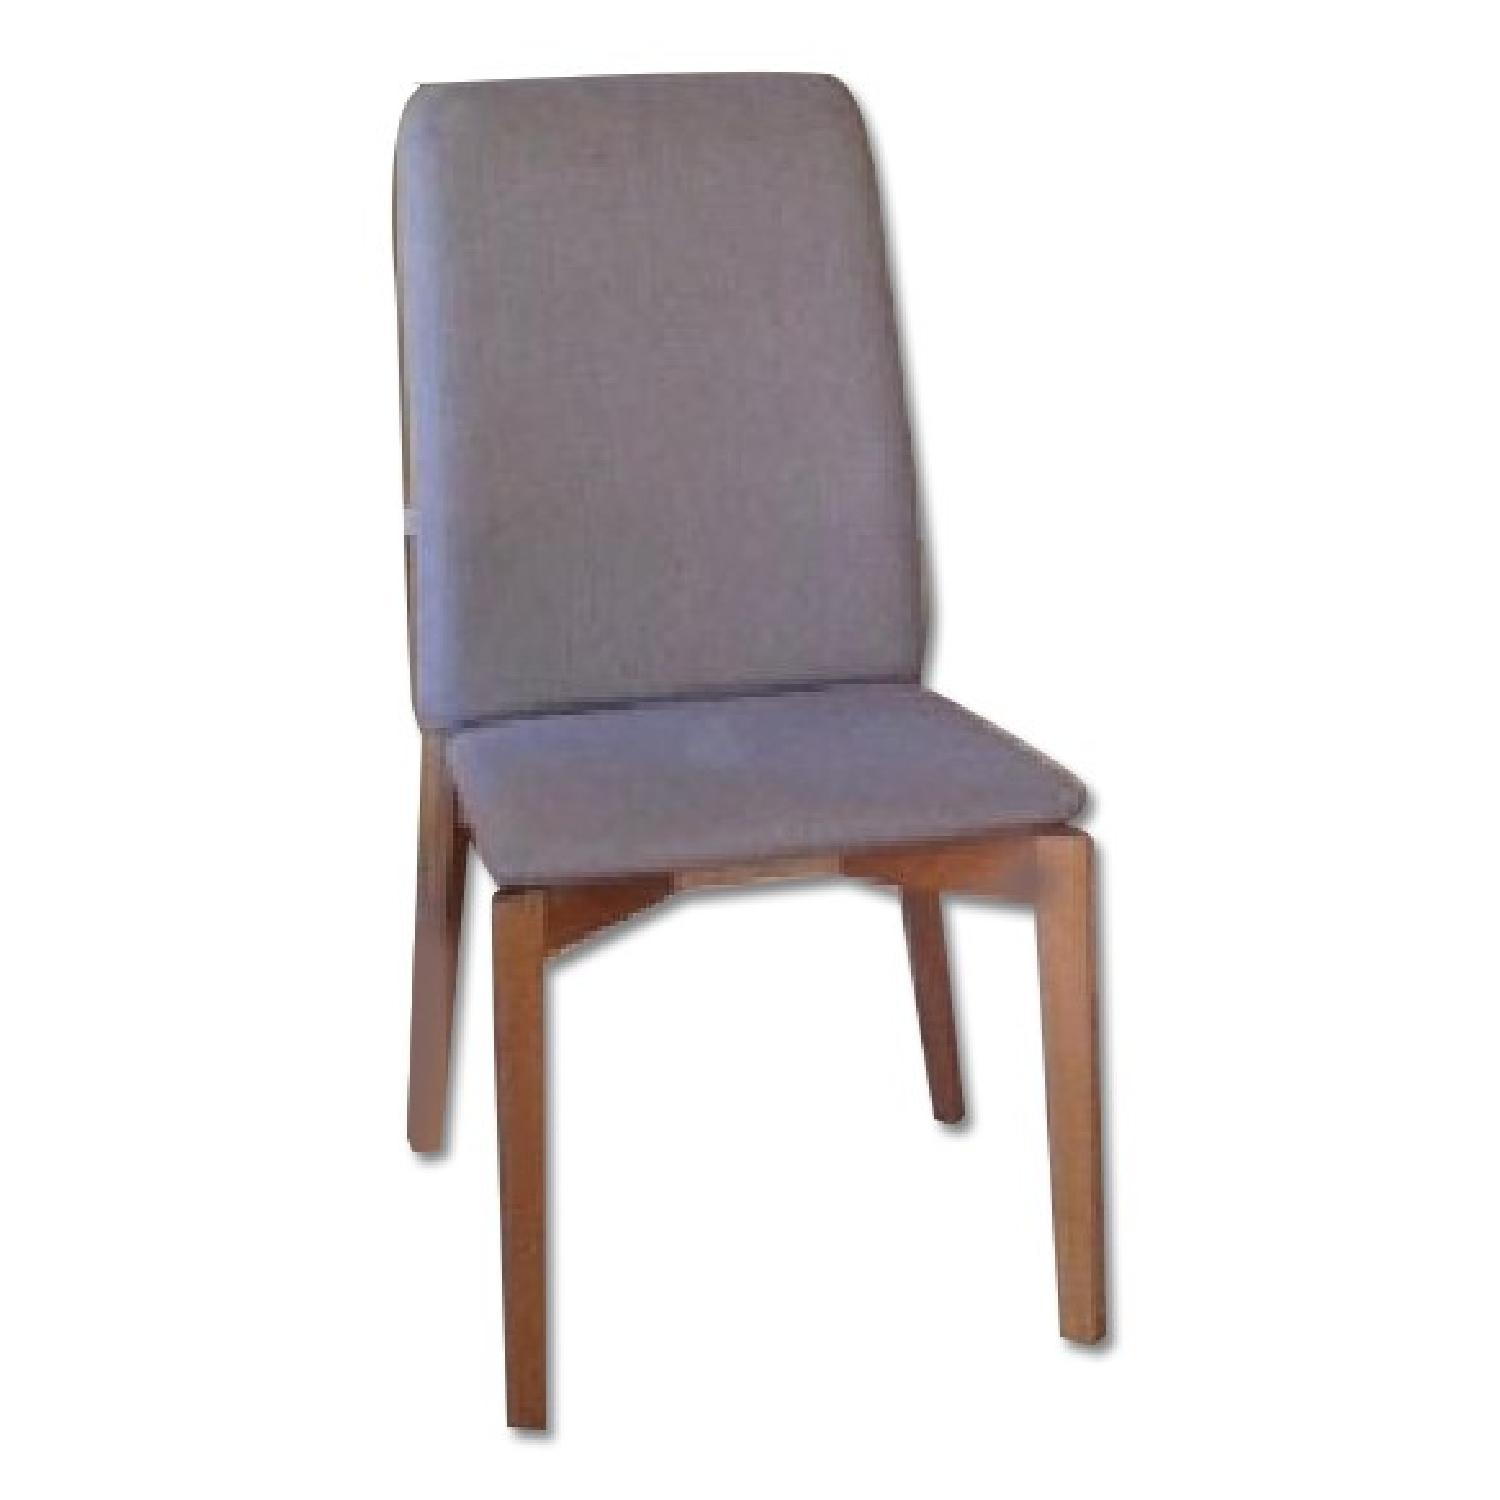 used dining chairs for sale in nyc aptdeco